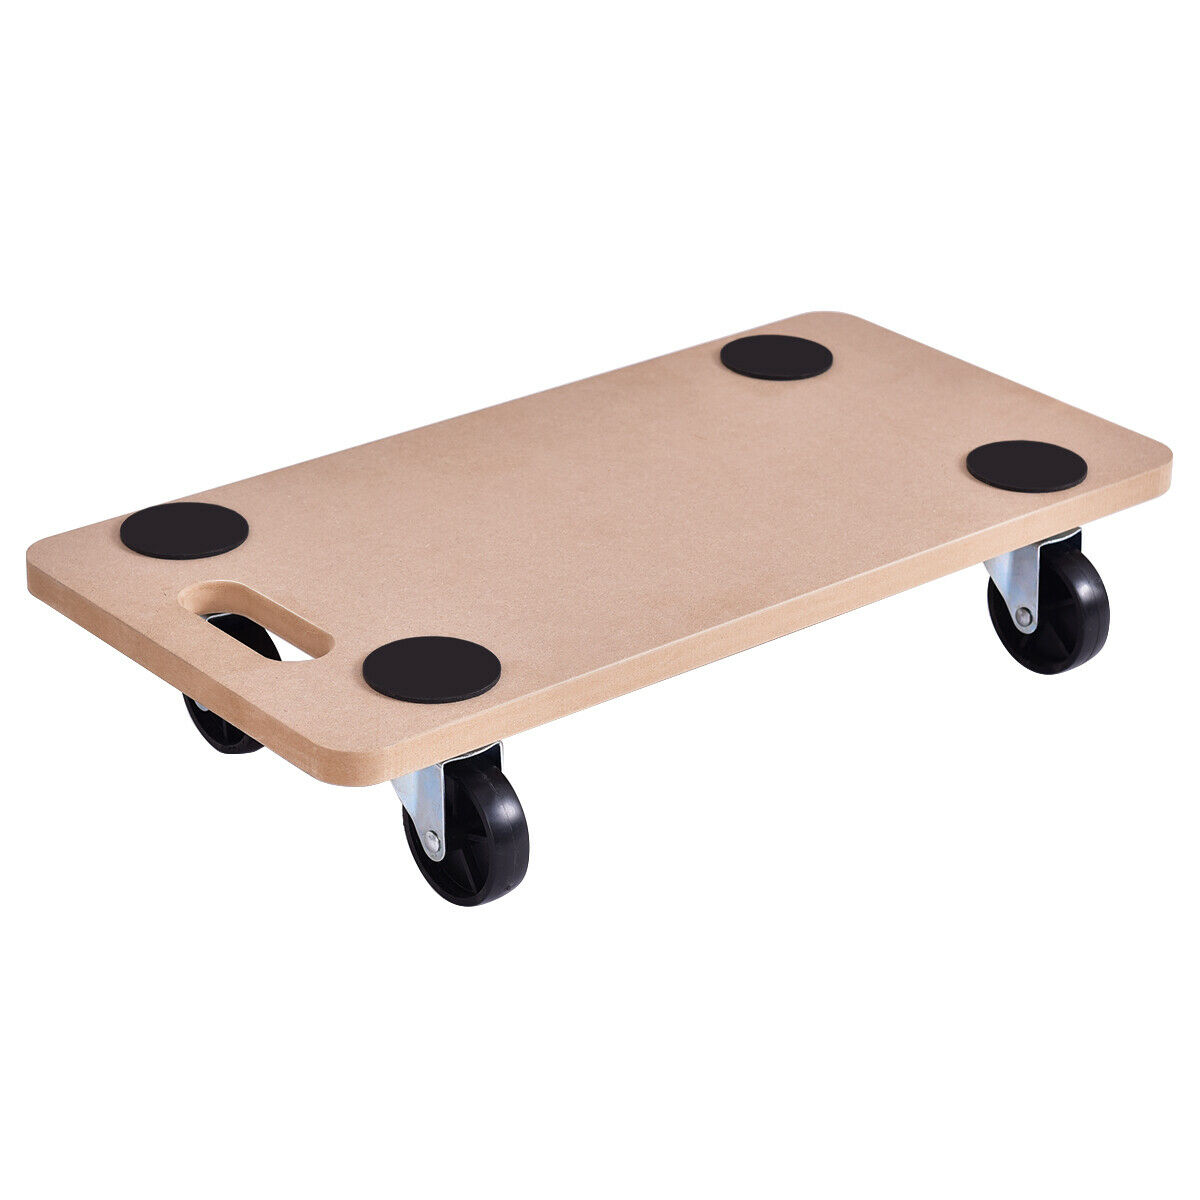 440lbs Platform Dolly Rectangle Wood Utility Cart Wheeled Moving Transporter